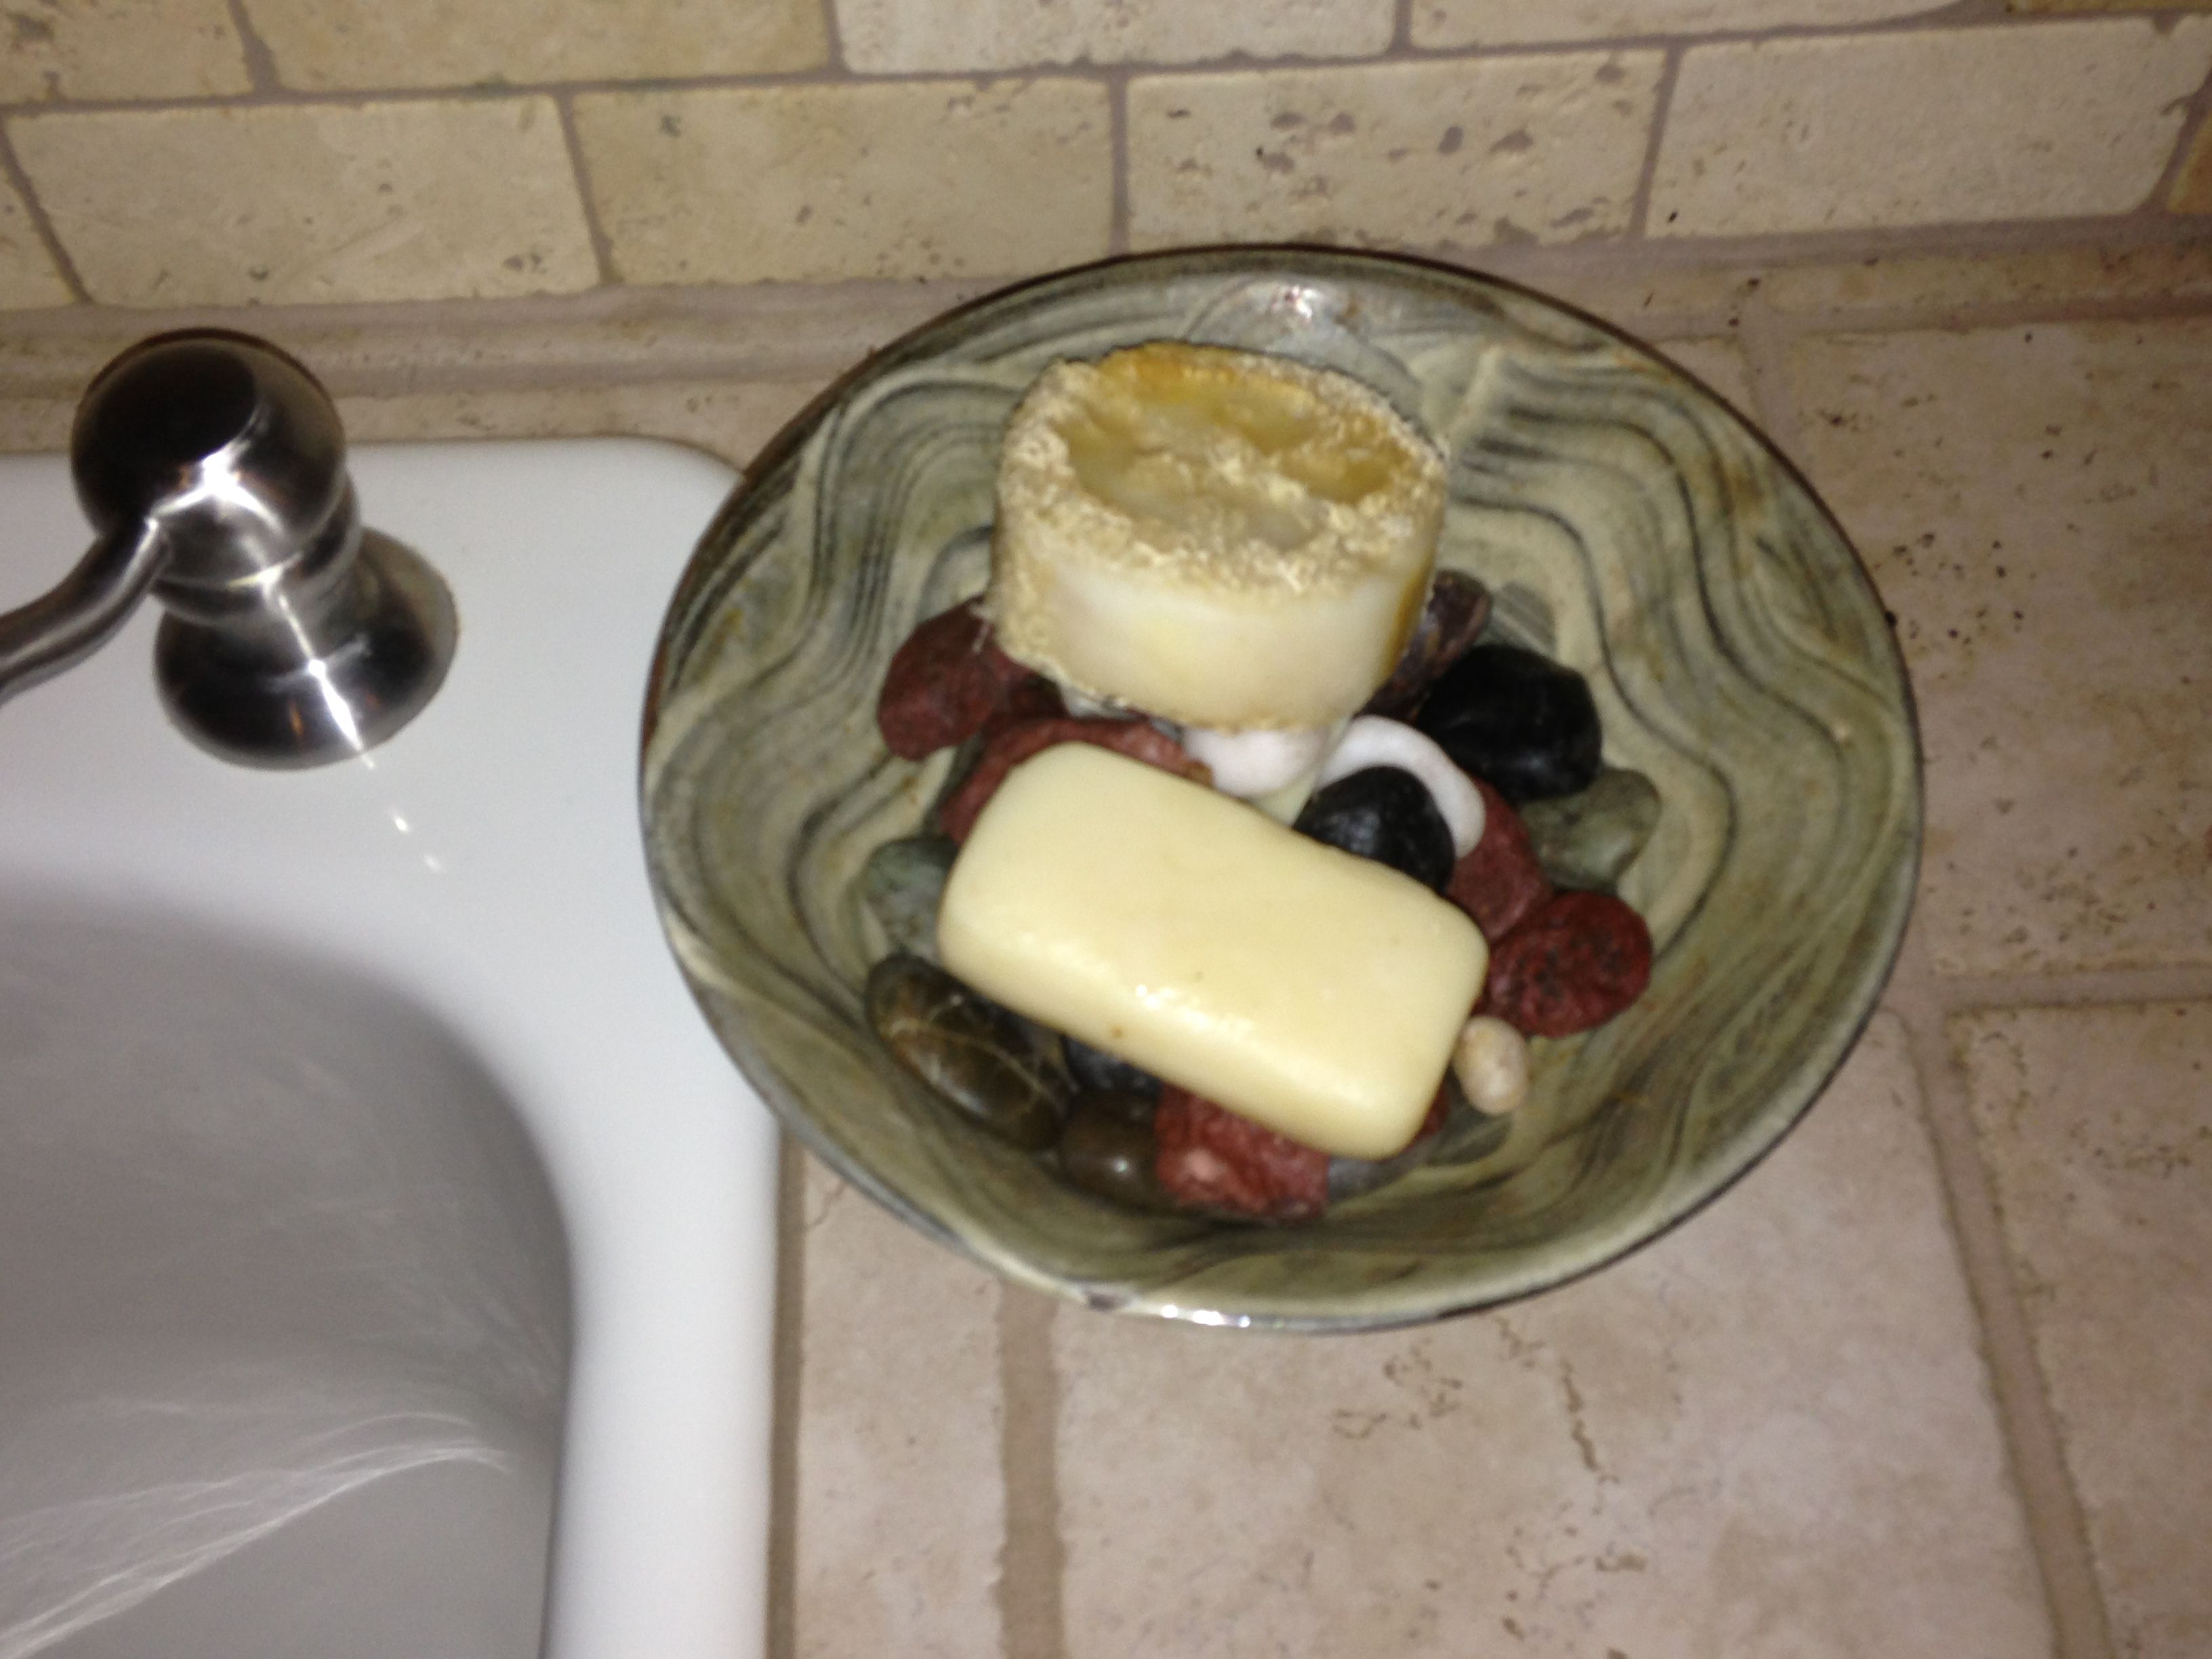 Ceramic bowl with small rocks in it. Set beside your kitchen sink to put your hand soap in to drain.